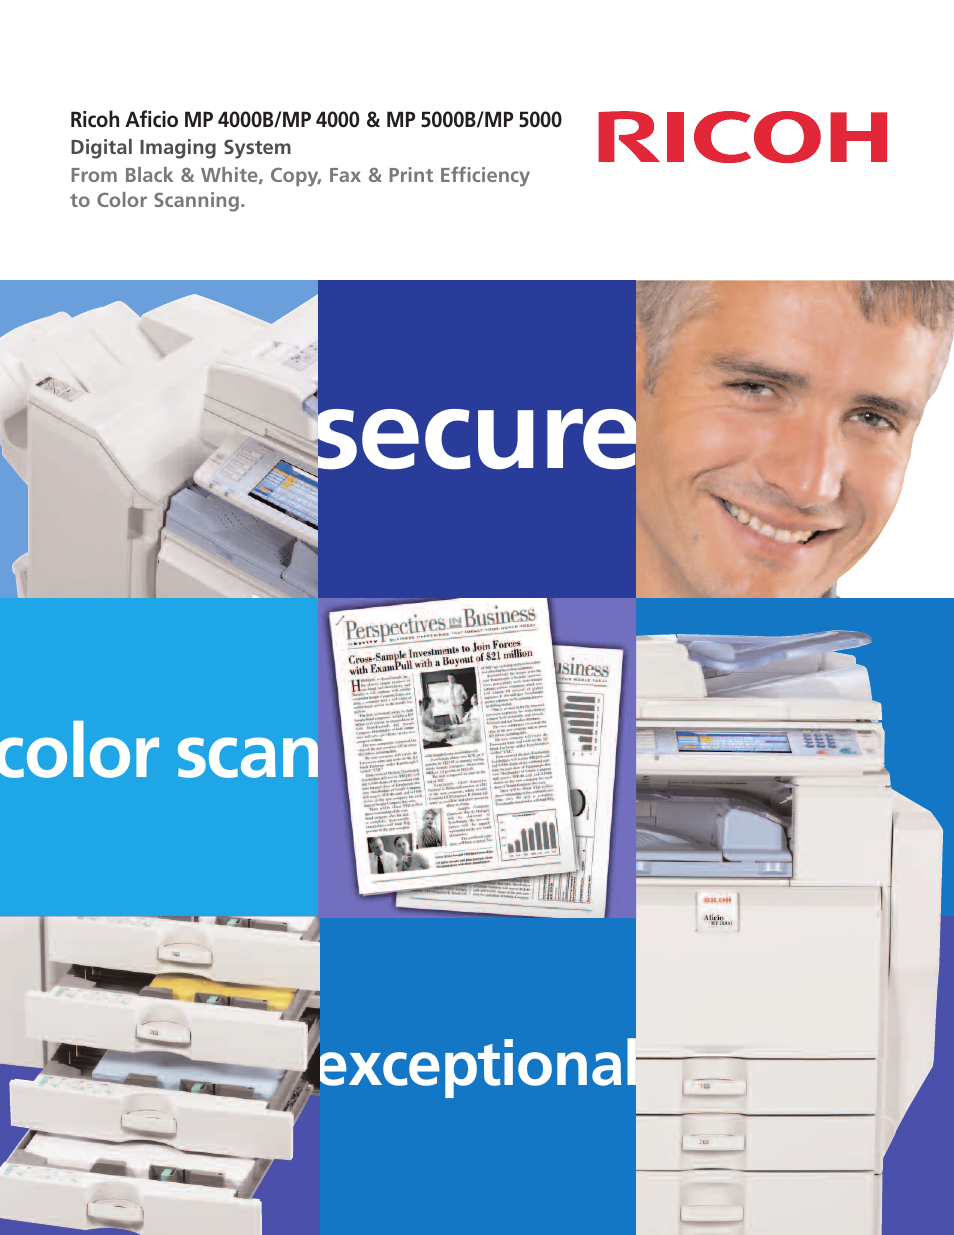 Ricoh Aficio MP 5000 User Manual | 8 pages | Also for: Aficio MP 5000B, Aficio  MP 4000, Aficio MP 4000B